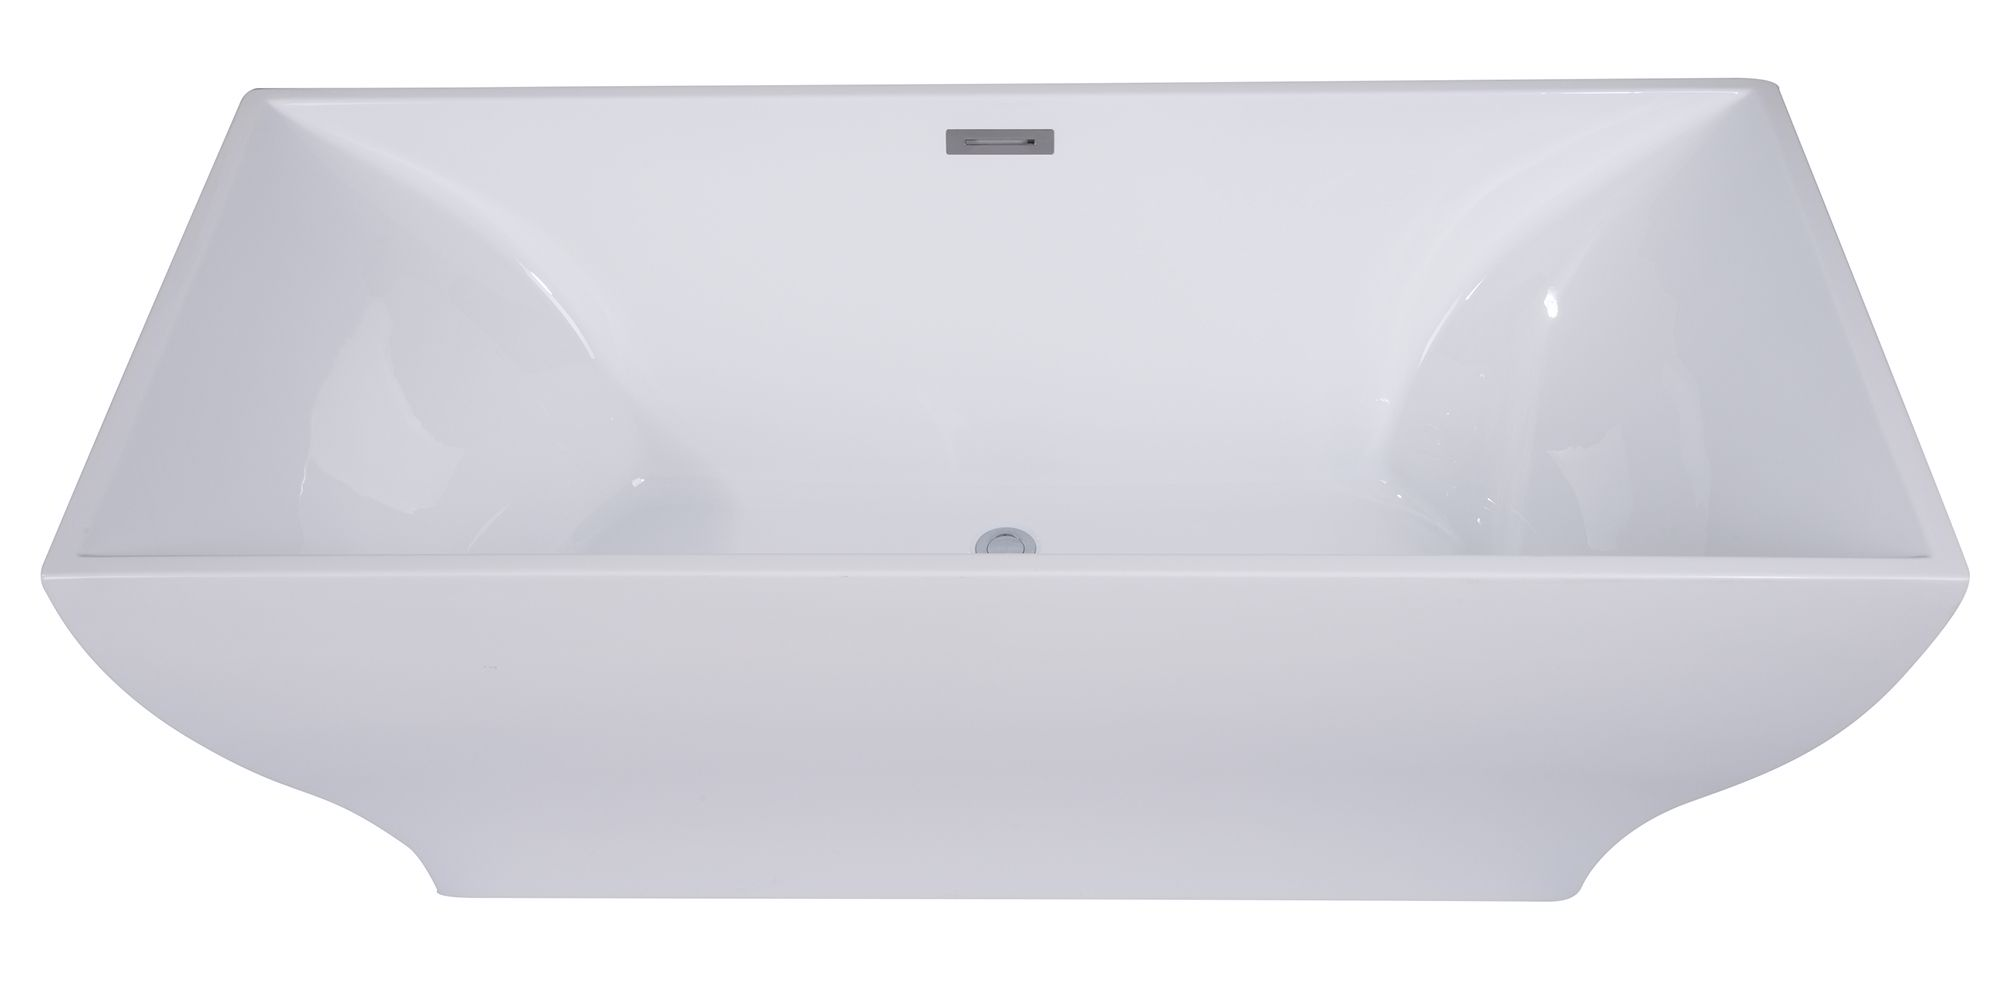 "ALFI Brand AB8840 67"" White Rectangular Acrylic Free Standing Soaking Bathtub"